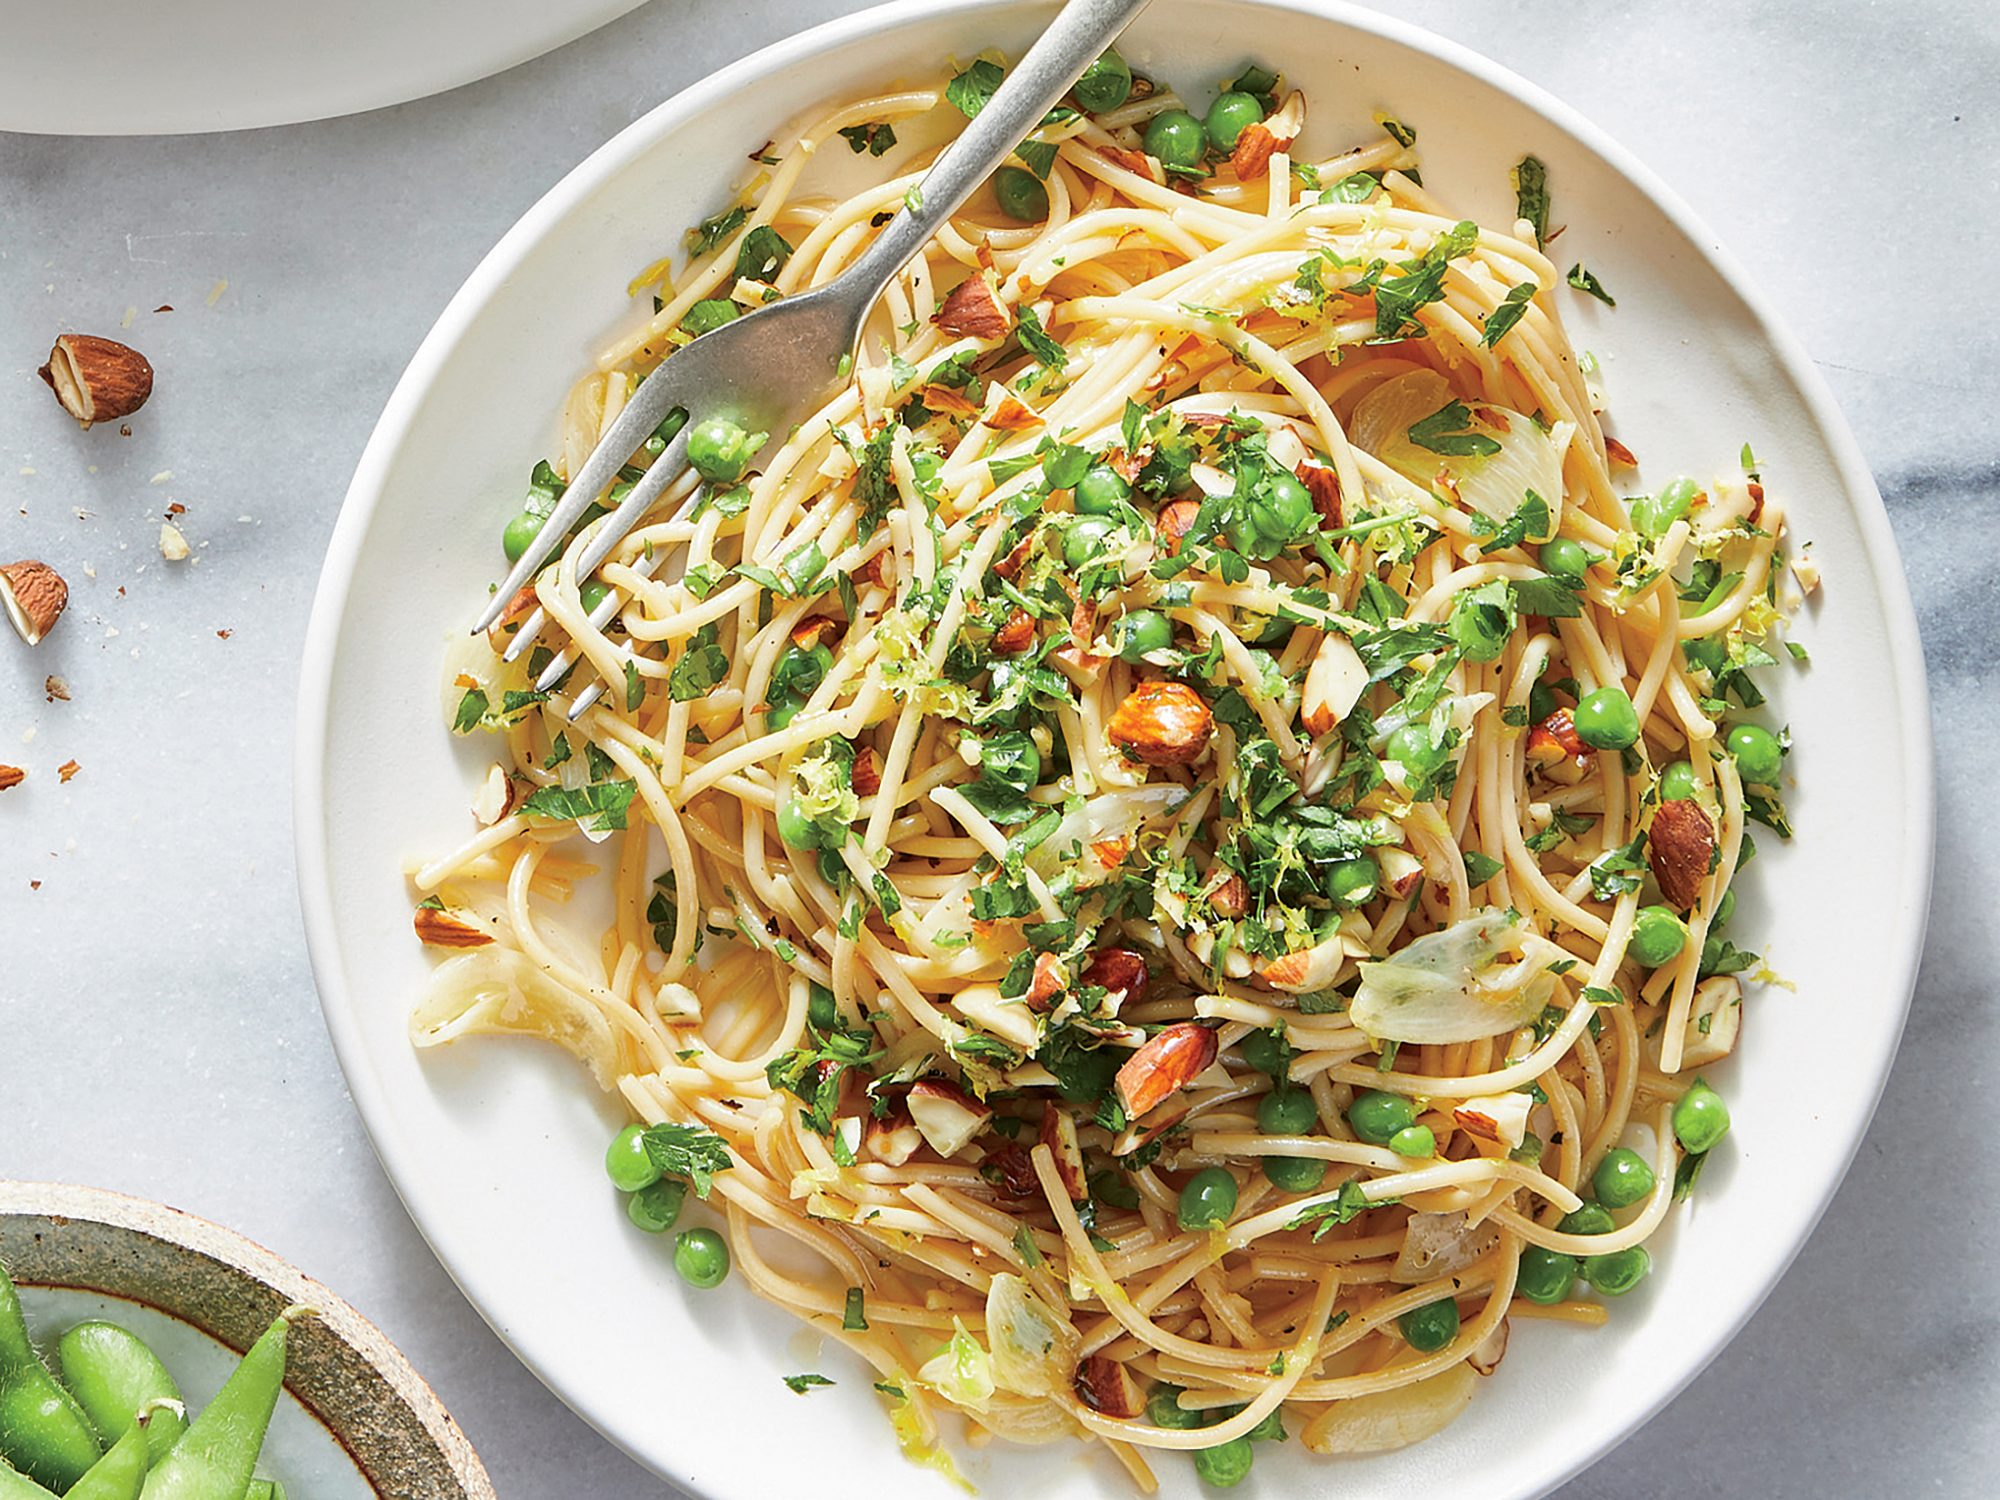 Pasta with Green Peas and Almond Gremolata